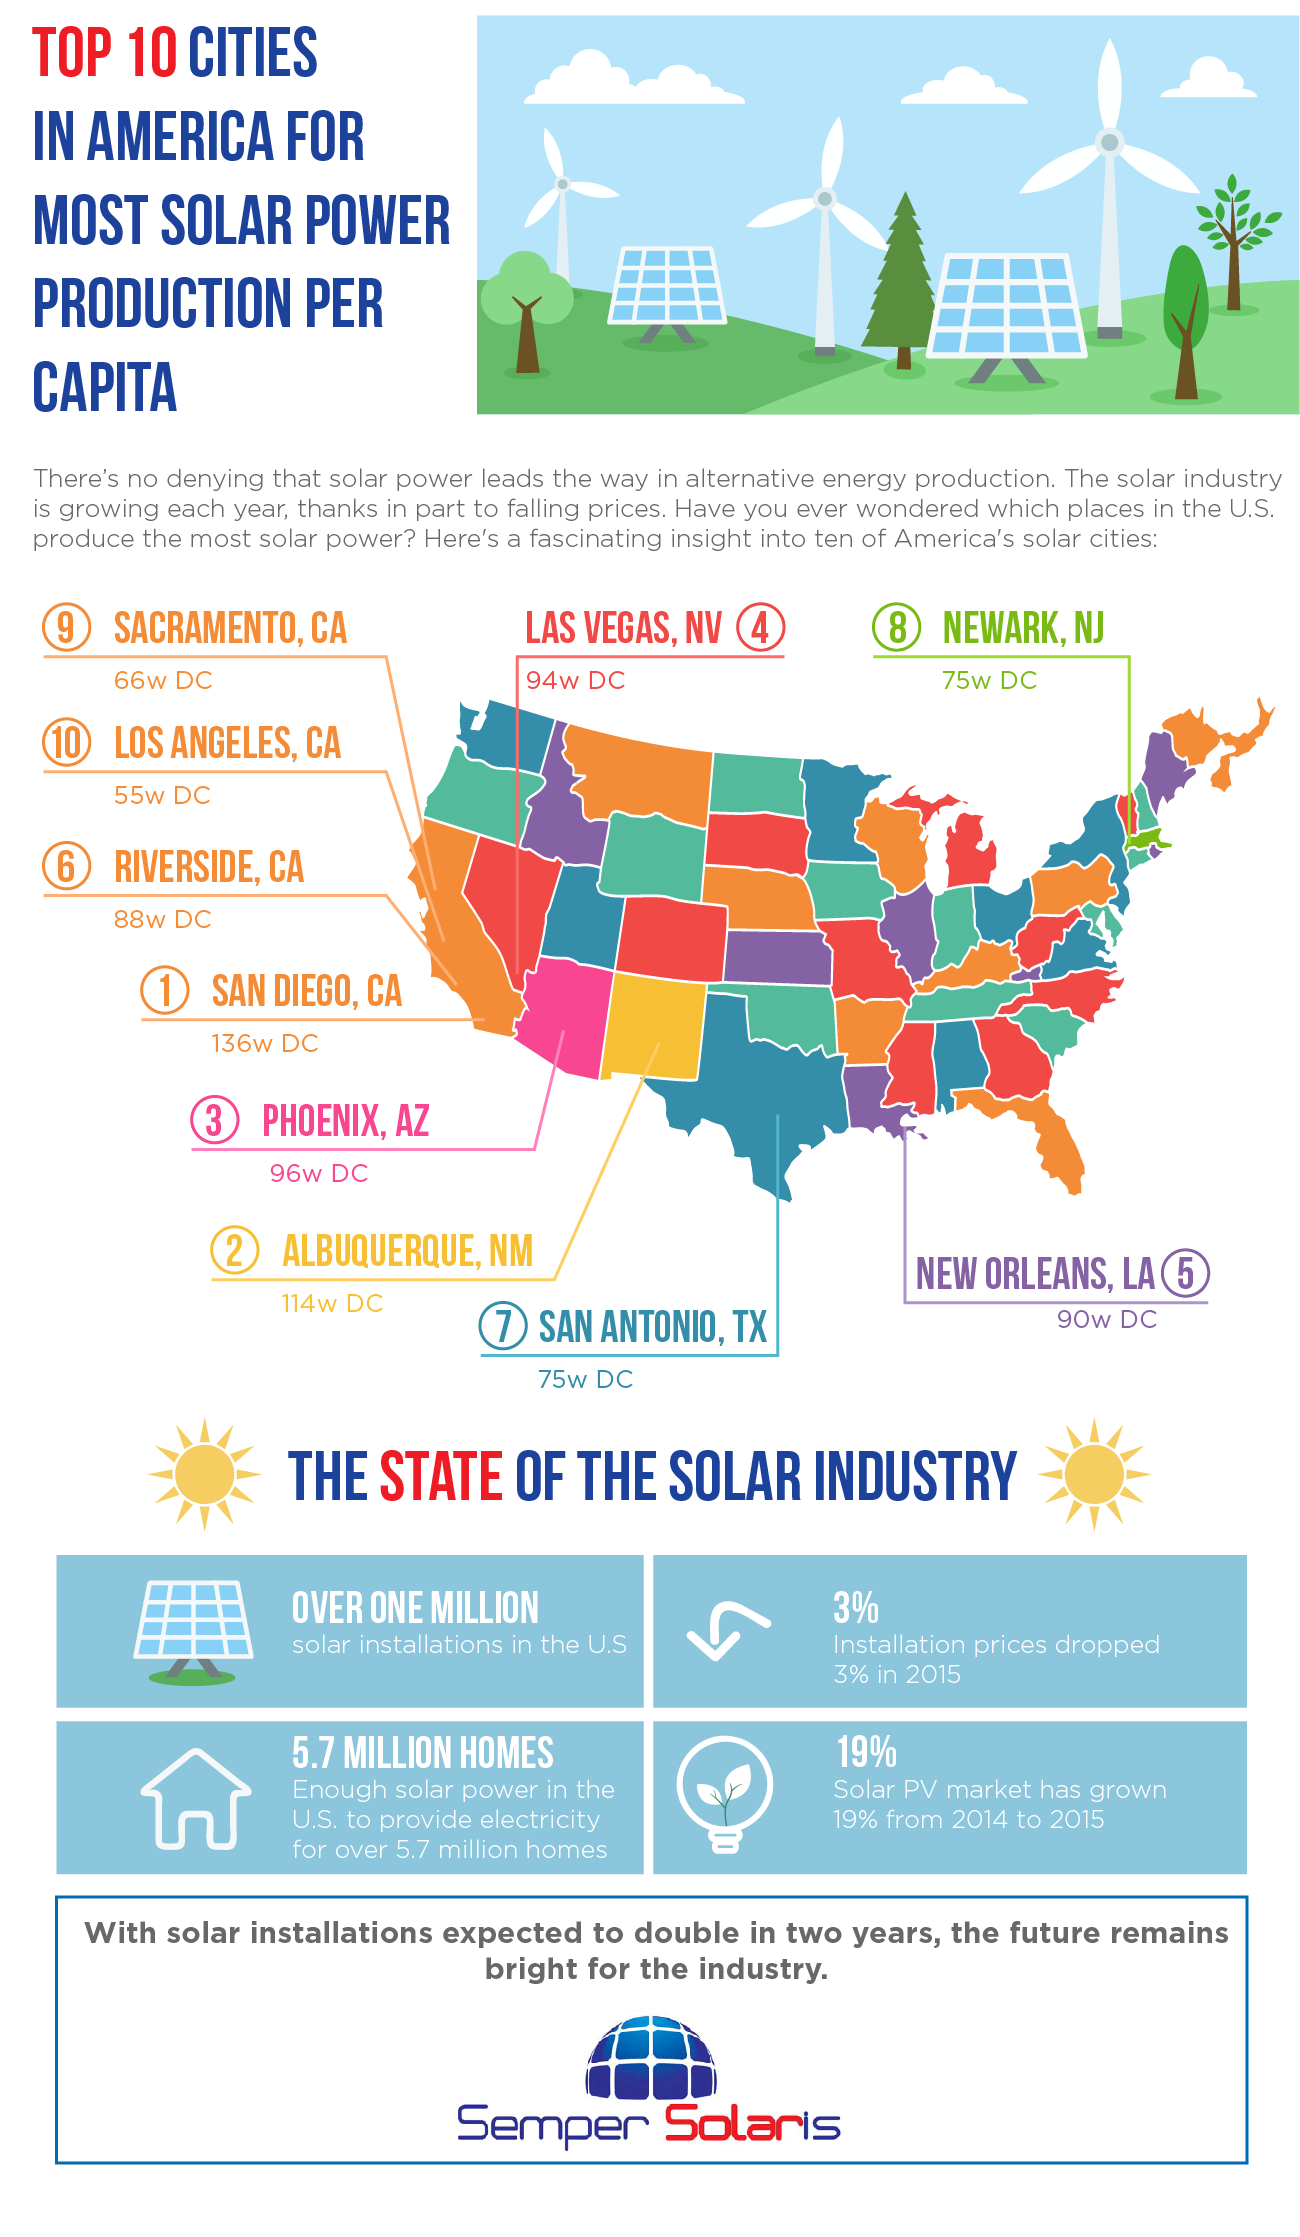 Top 10 Cities for Solar